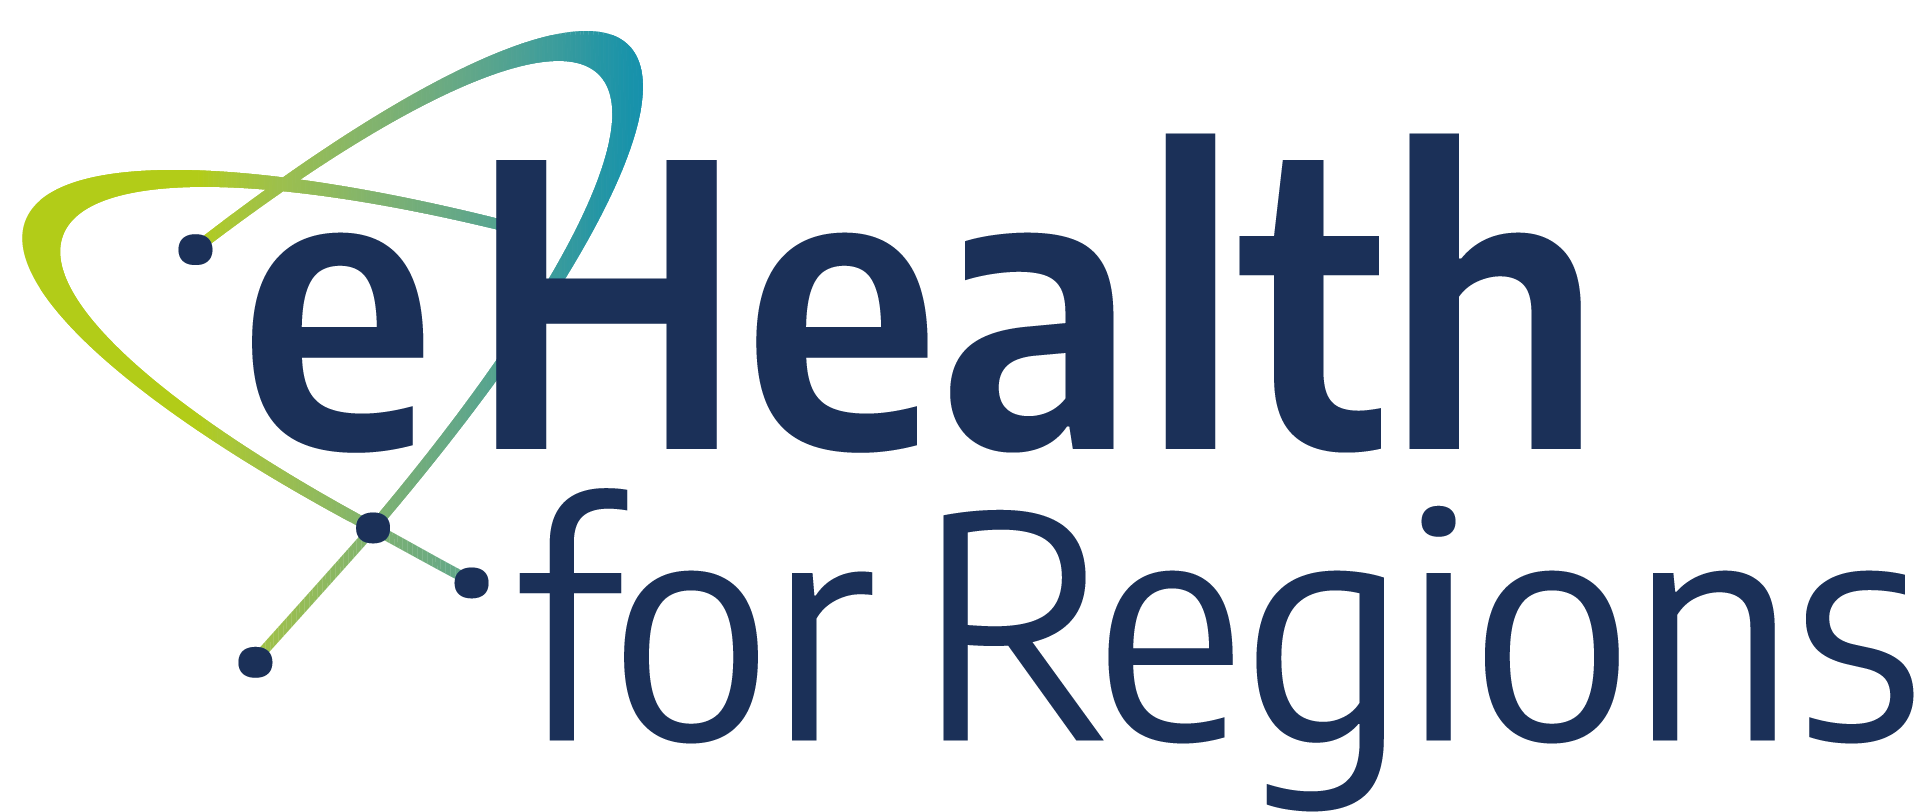 Logo of eHealth for Regions network